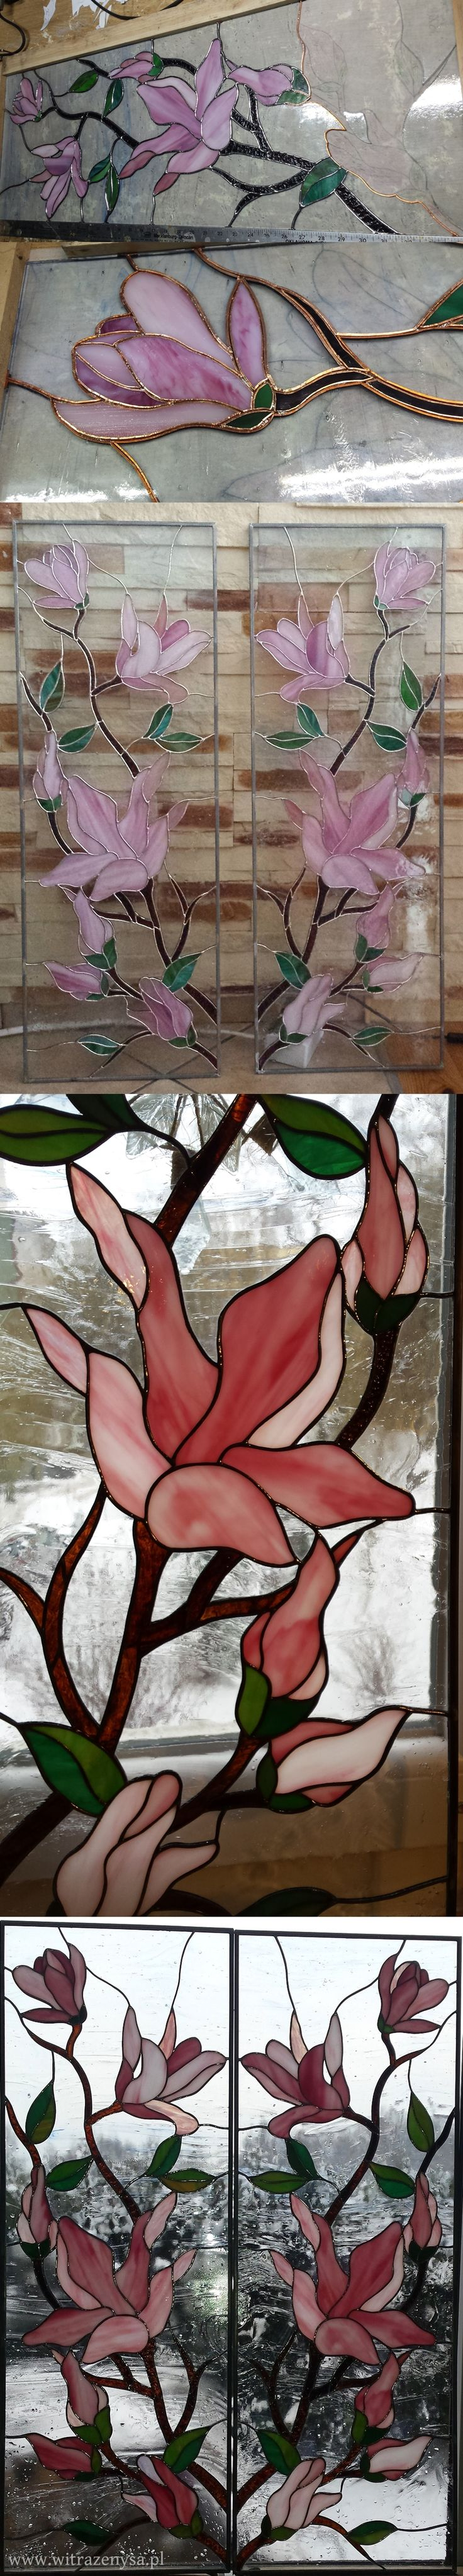 stained glass window, how is it made, witraż do okna wykonanie